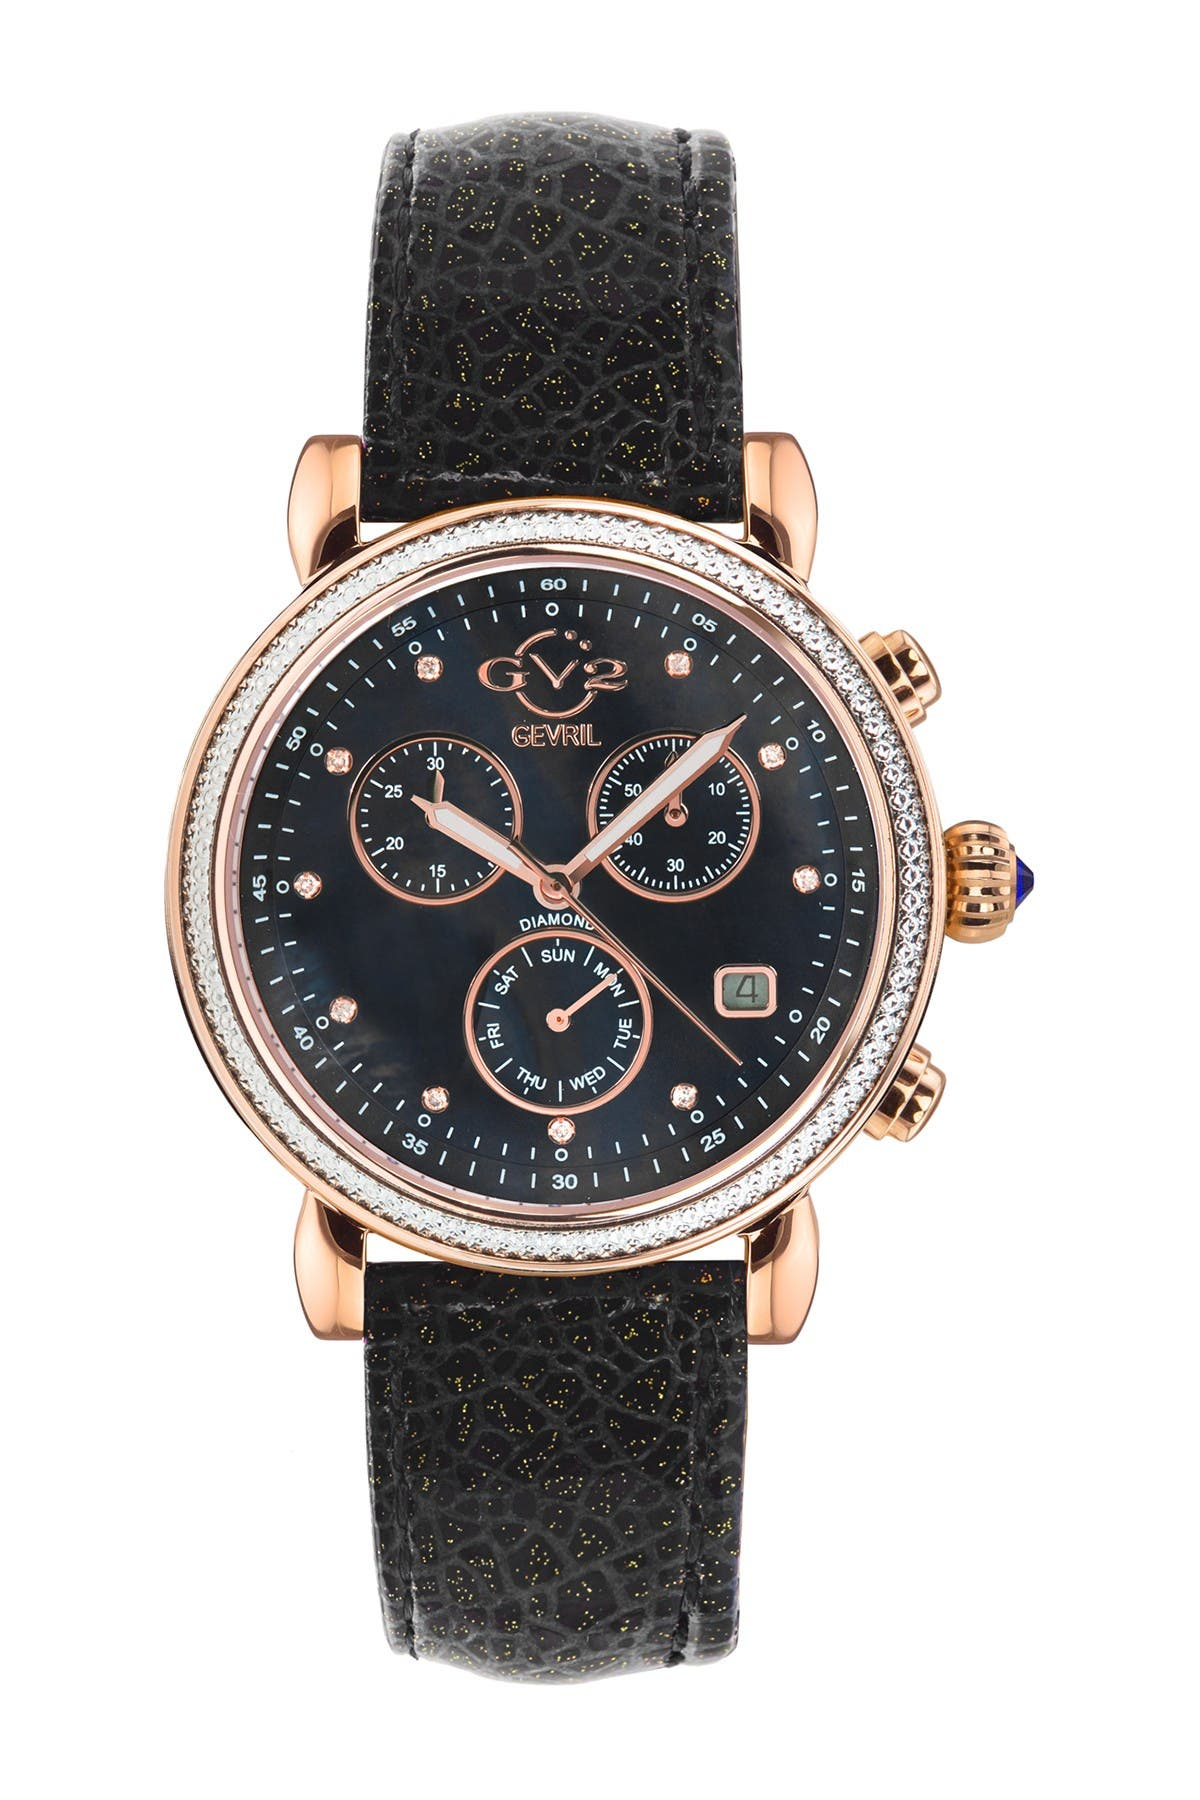 Image of Gevril Women's Marsala Sparkle Chronograph Diamond Leather Strap Watch, 37mm - 0.0044 ctw